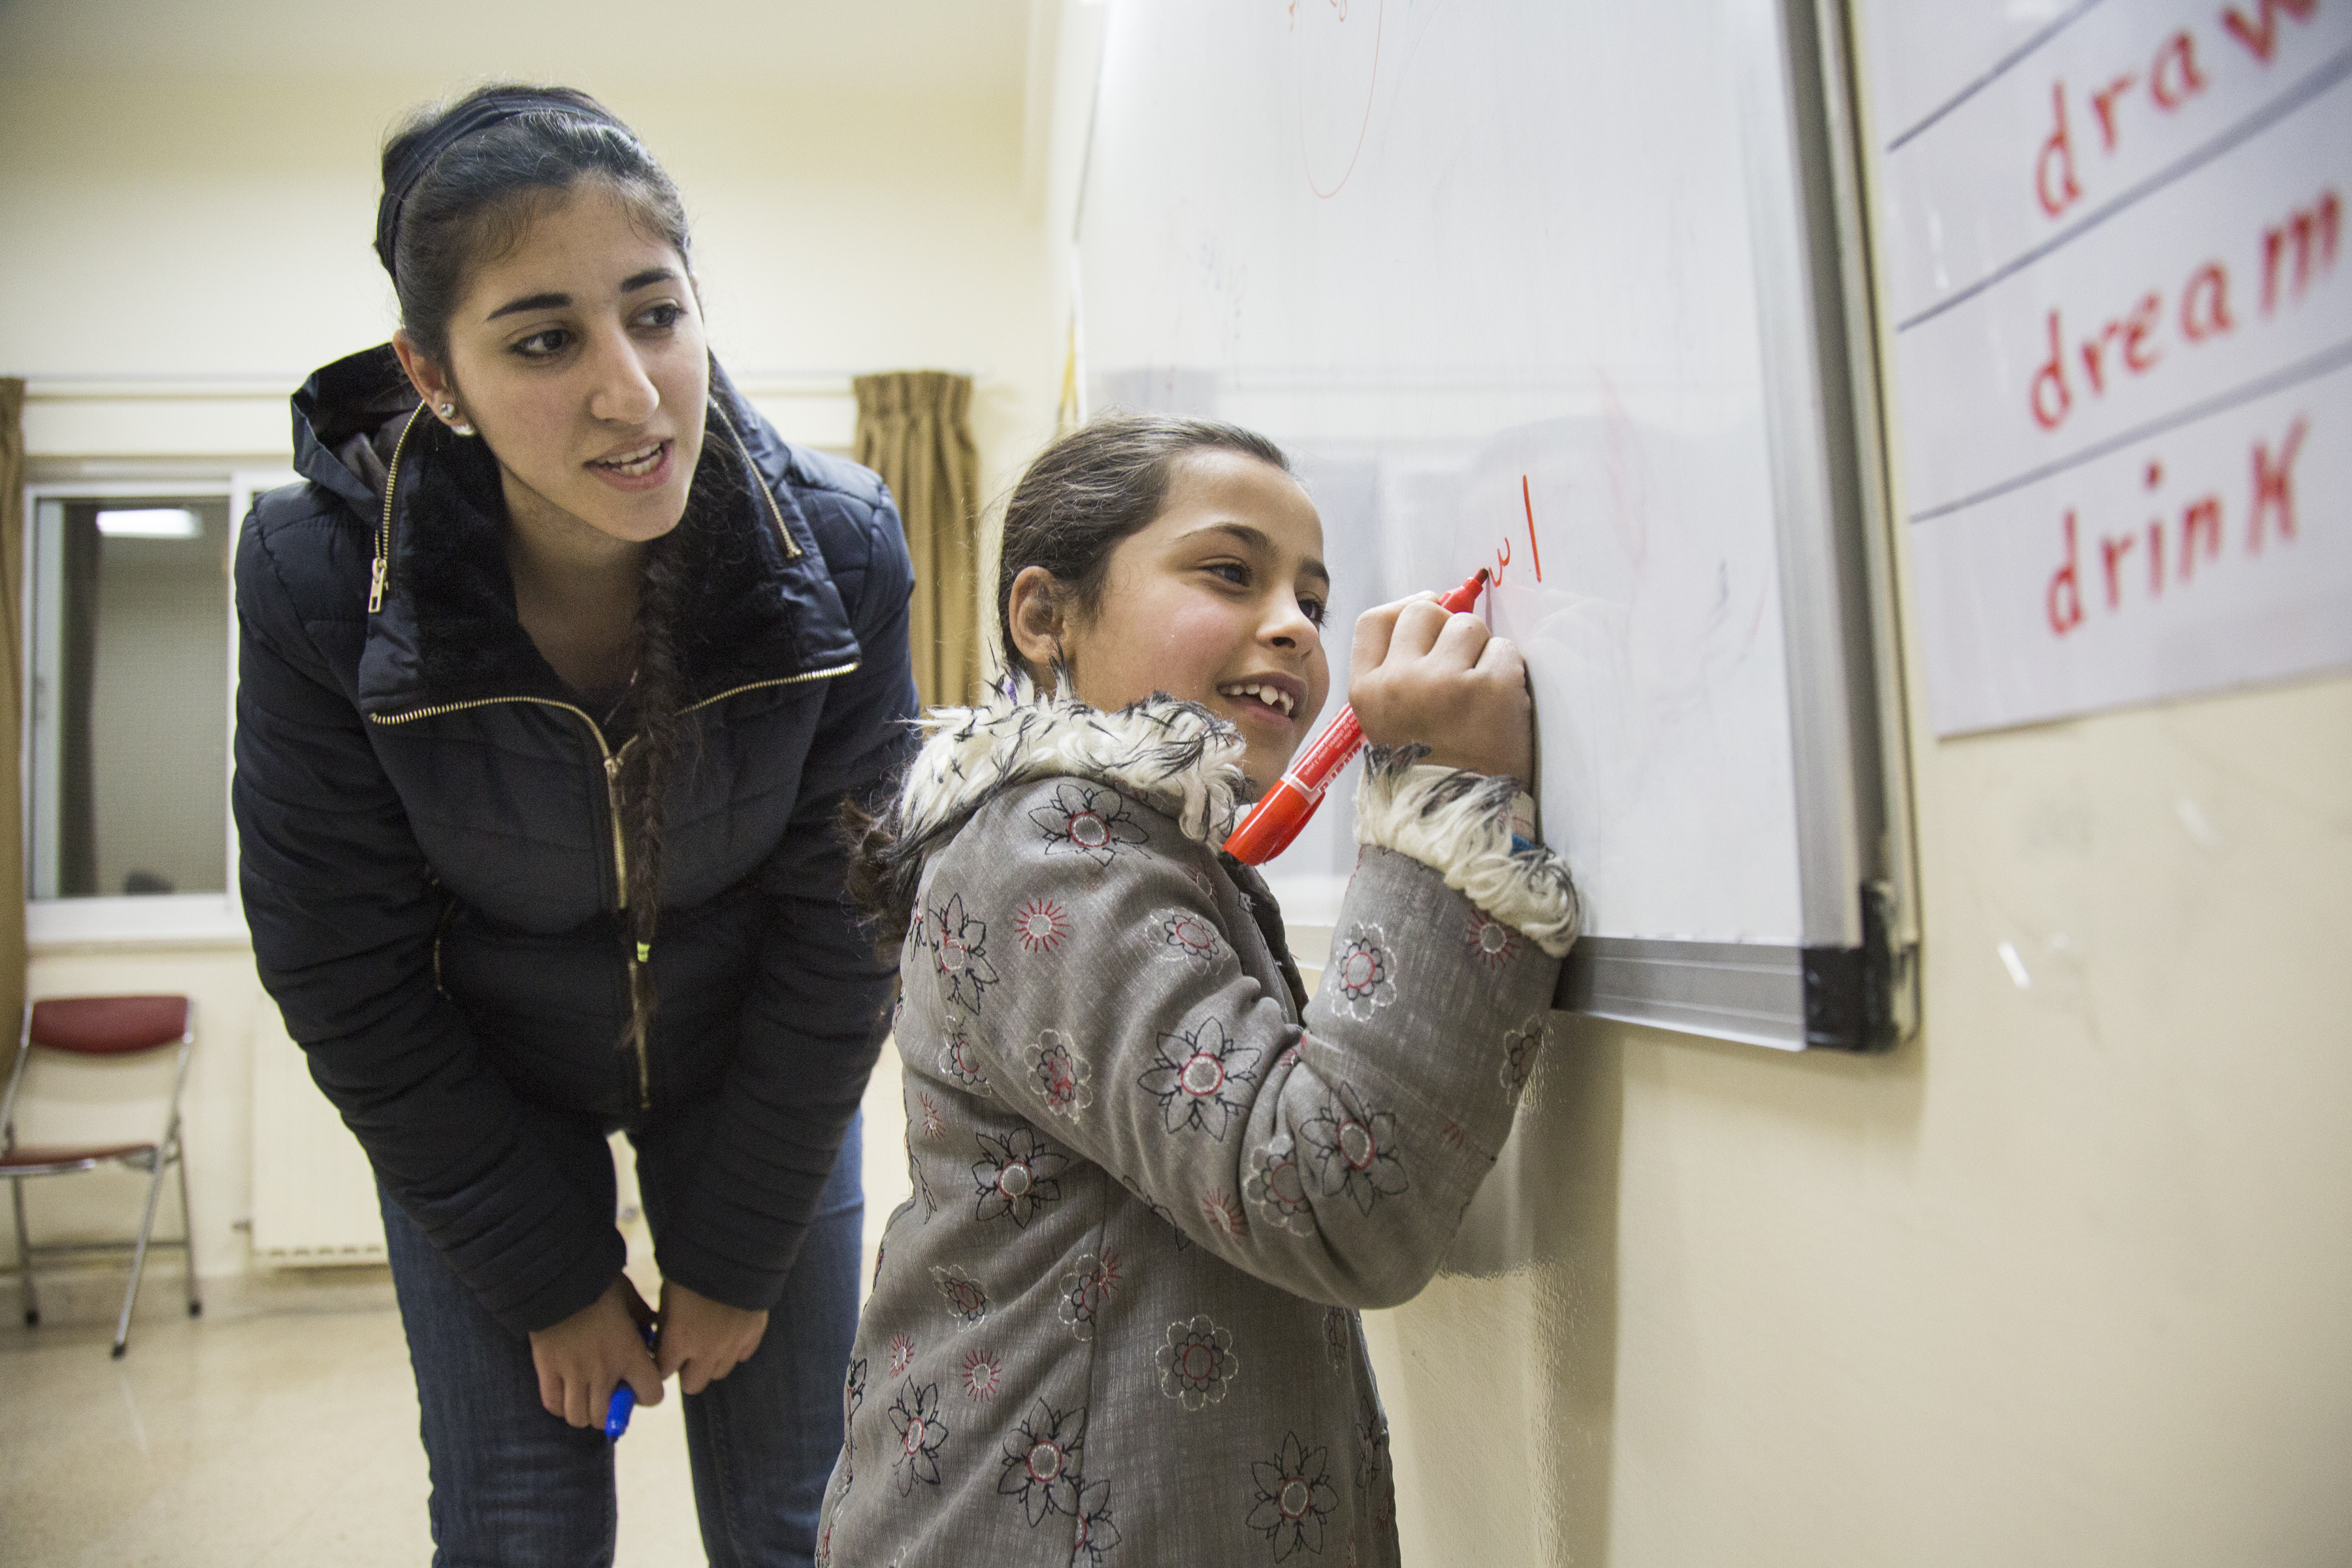 CRS supports classes for refugee children as part of the Educational and Protection for Syrian Refugees Project. Photo by Oscar Durand for CRS